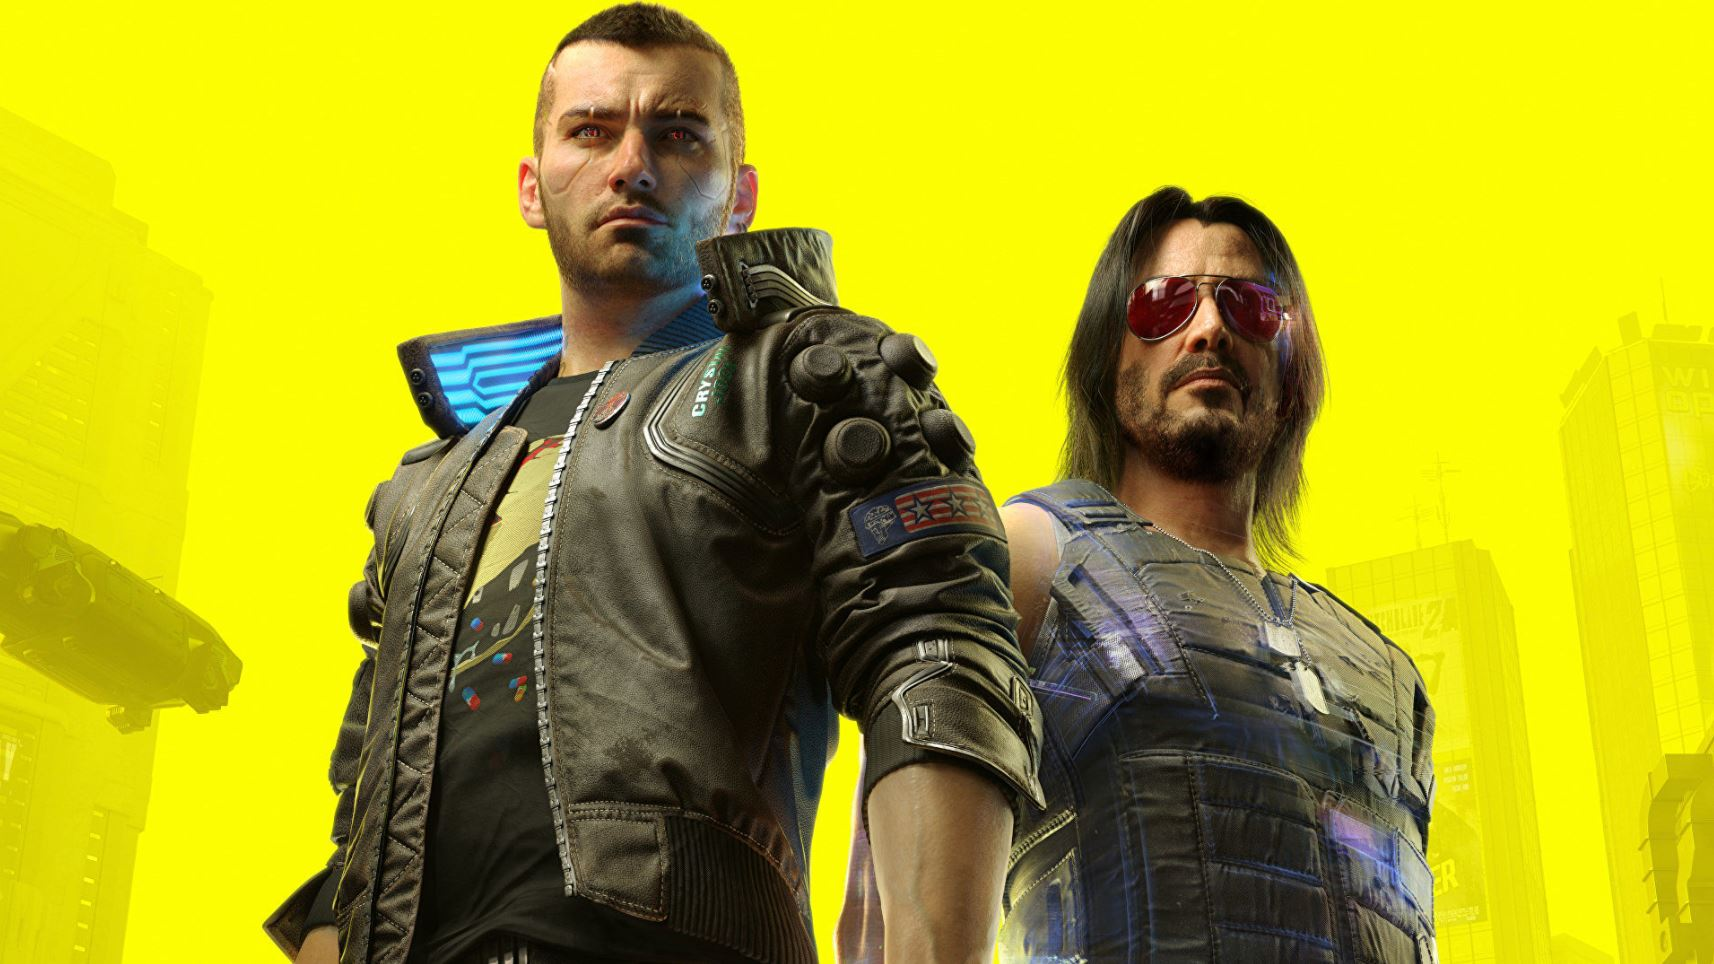 cyberpunk-2077-patch-1-2-on-ps4-pro-continues-to-outperform-xbox-one-xs-frame-rate-but-it-falters-in-other-areas